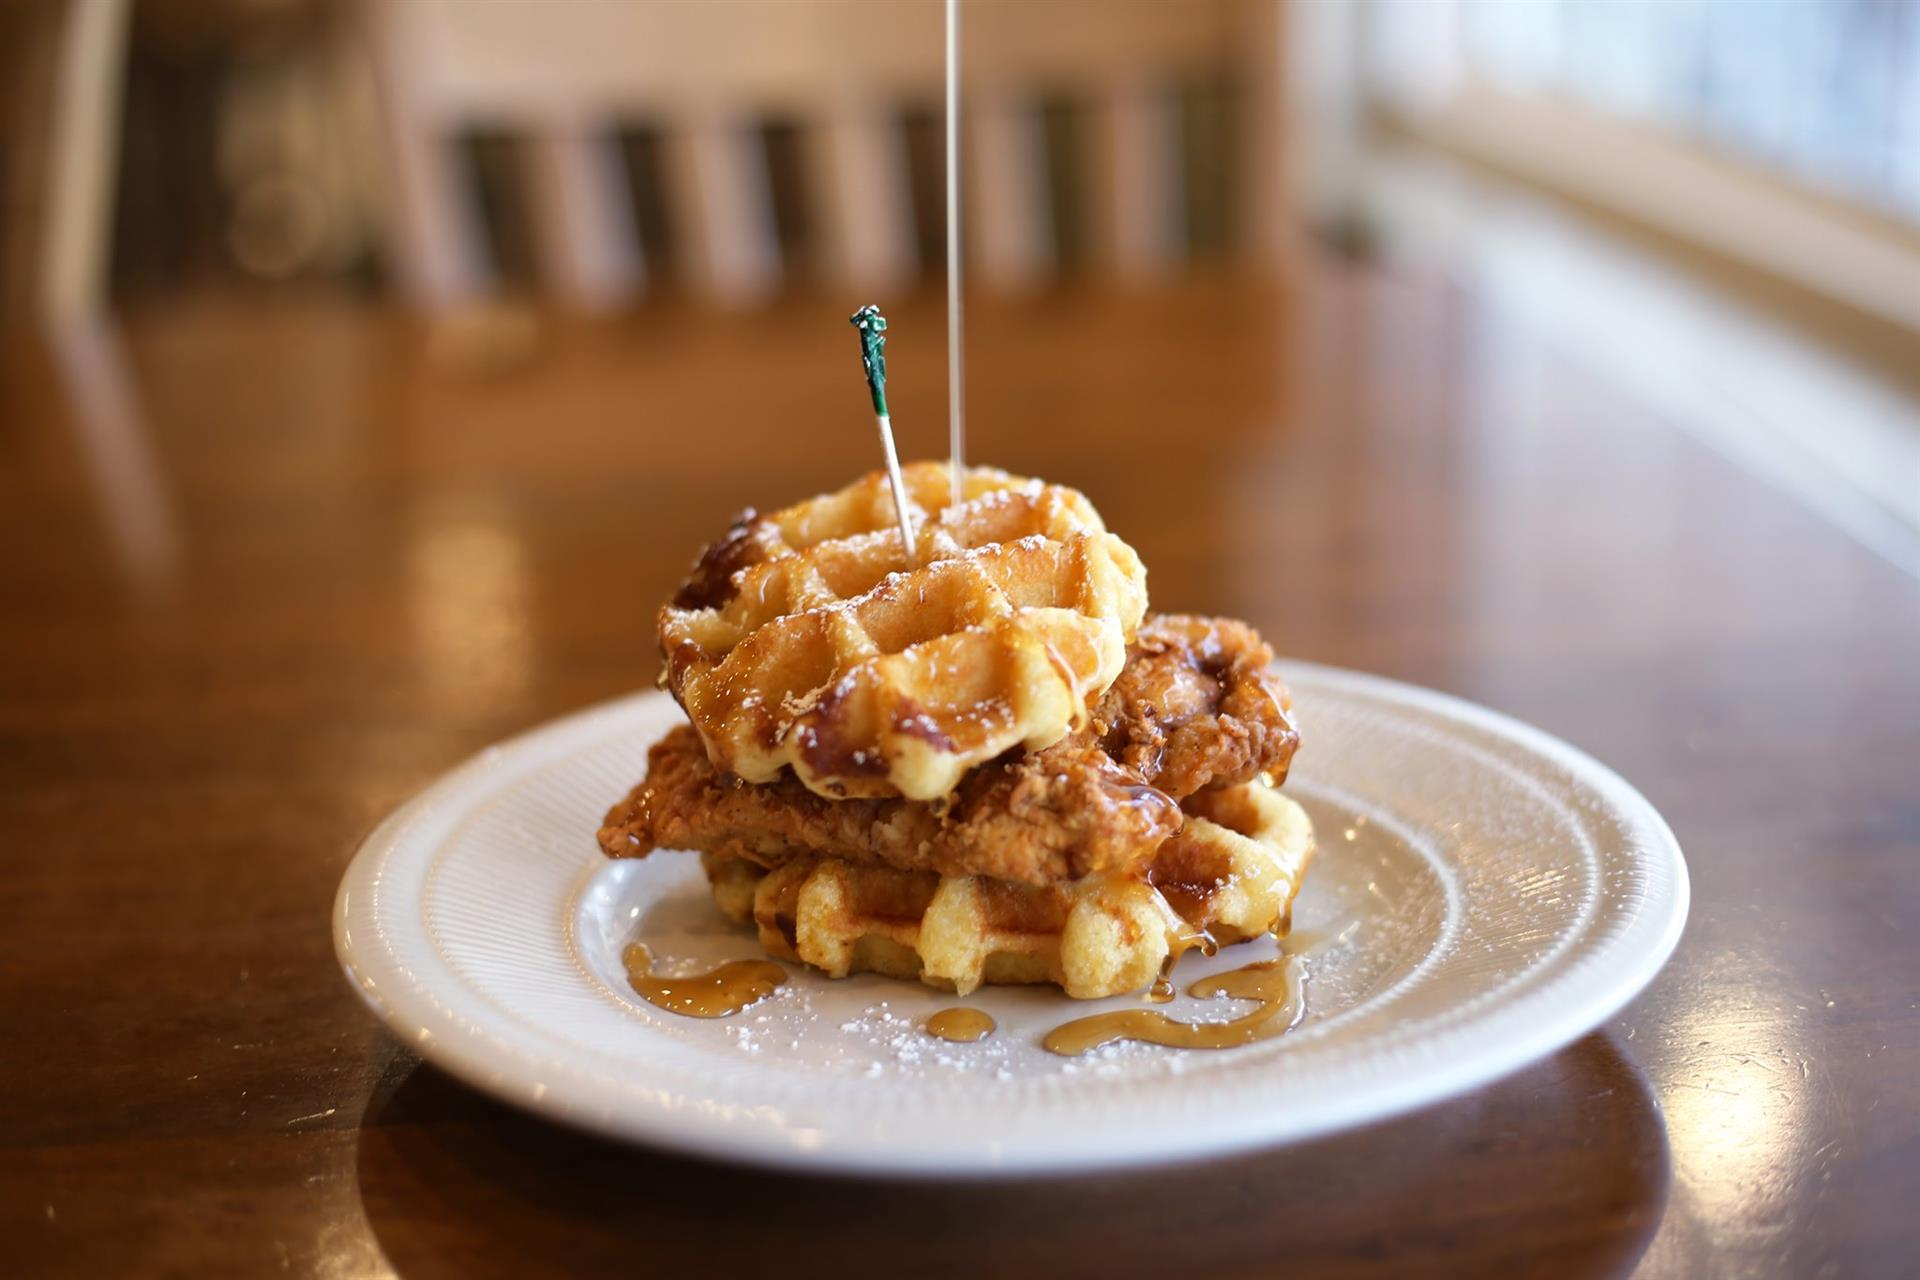 fried chicken with waffles as the buns on a plate